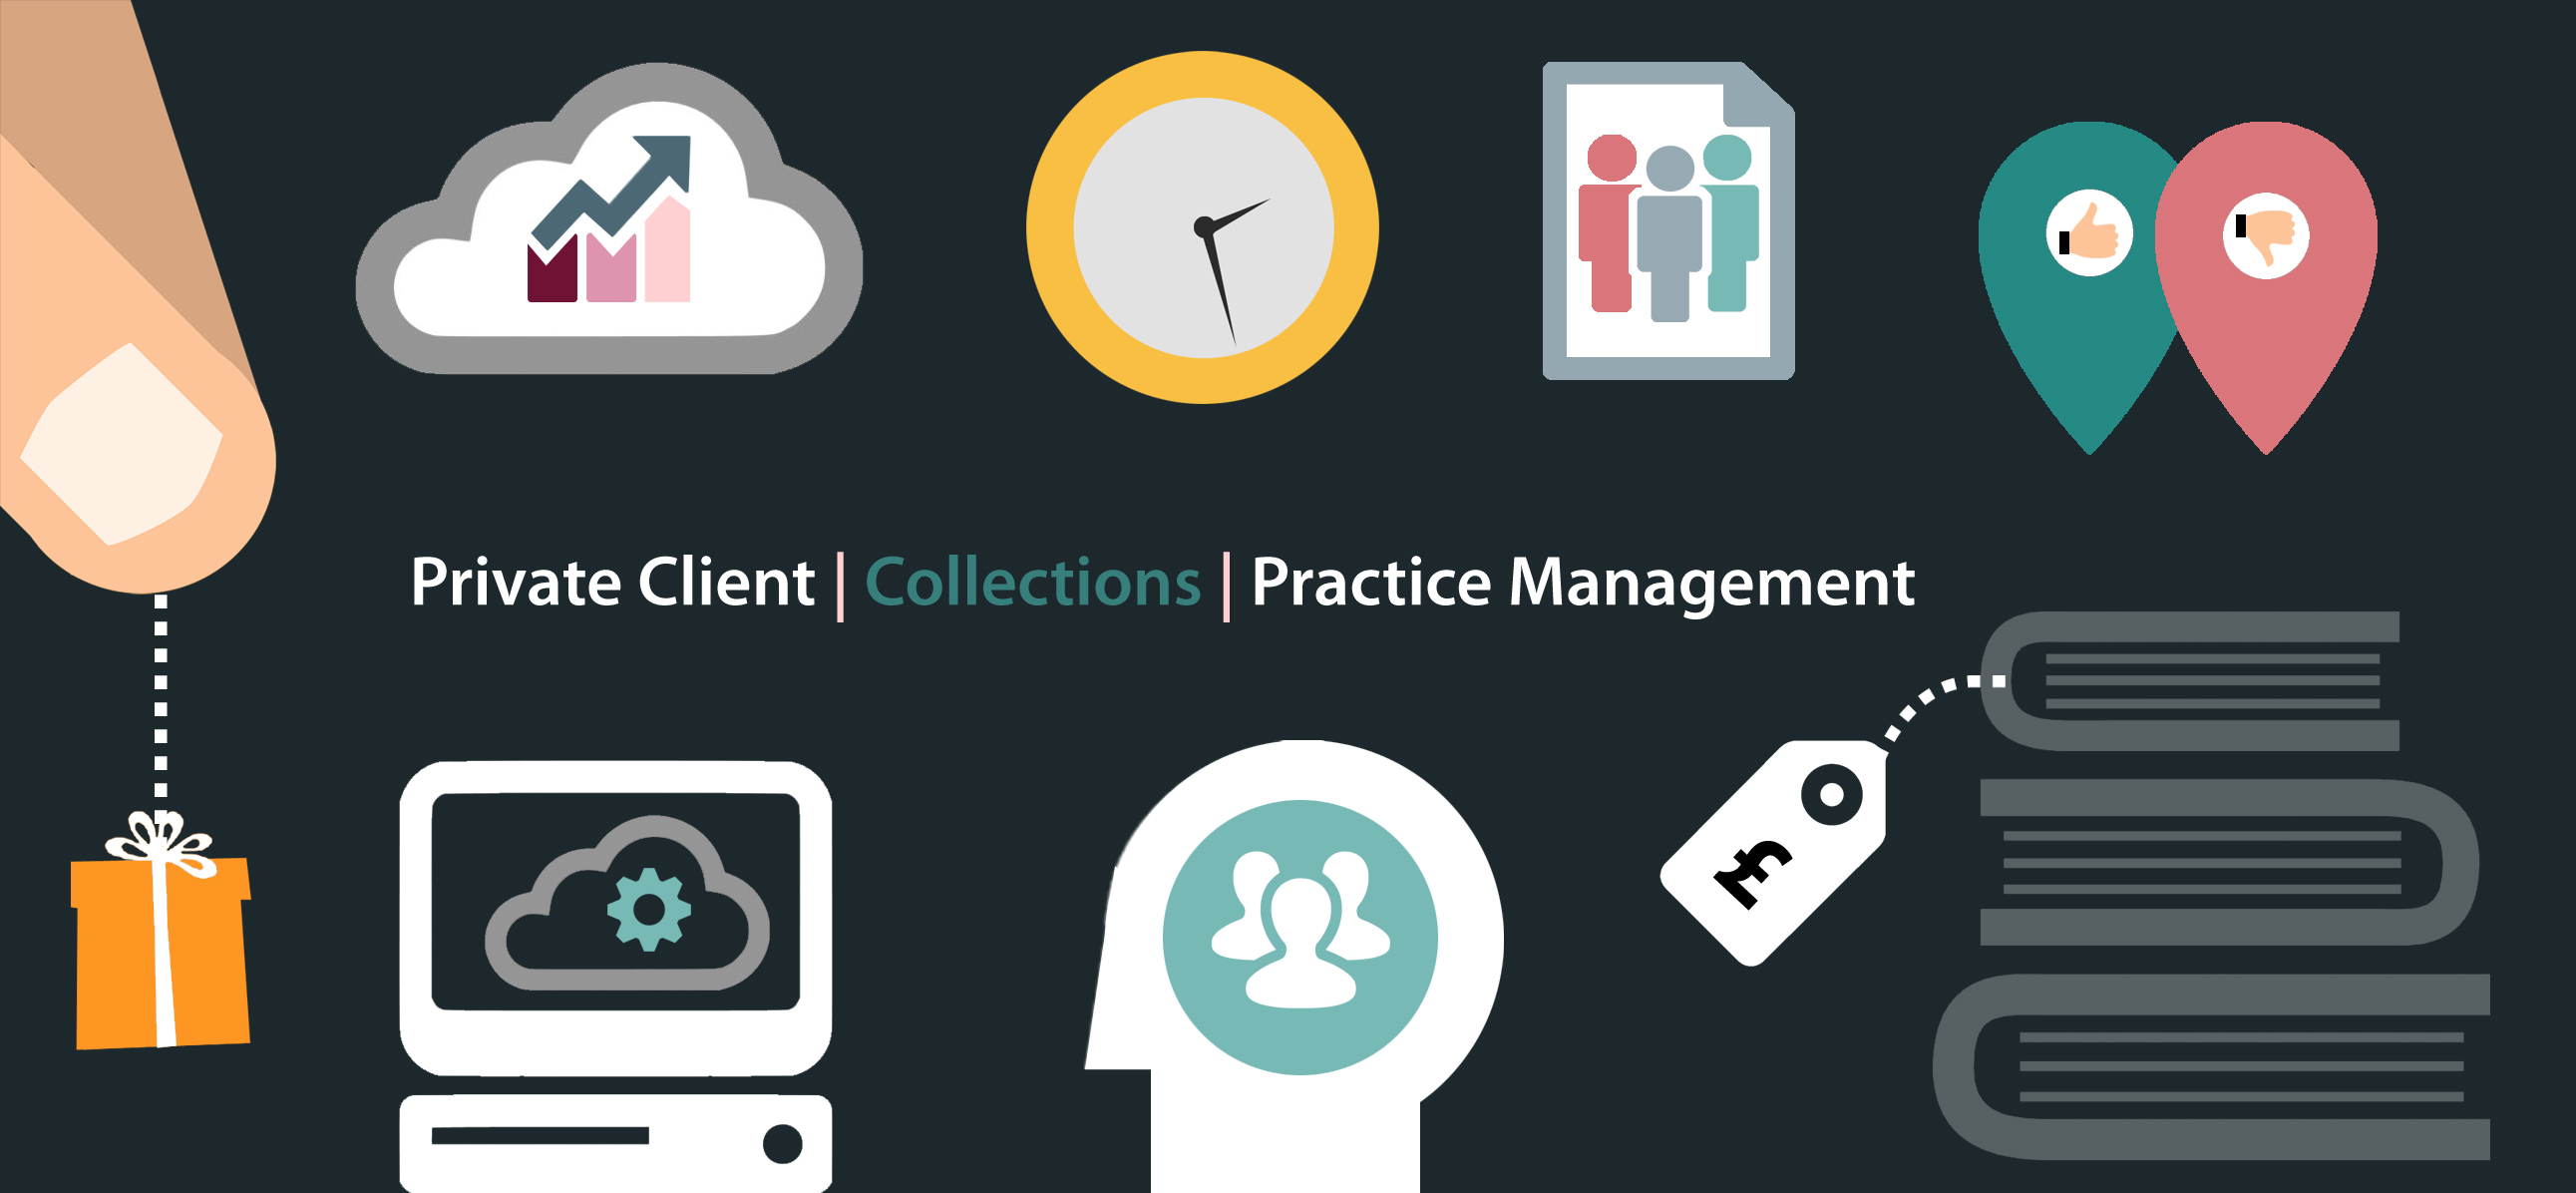 Private Client - Practice Management Collection